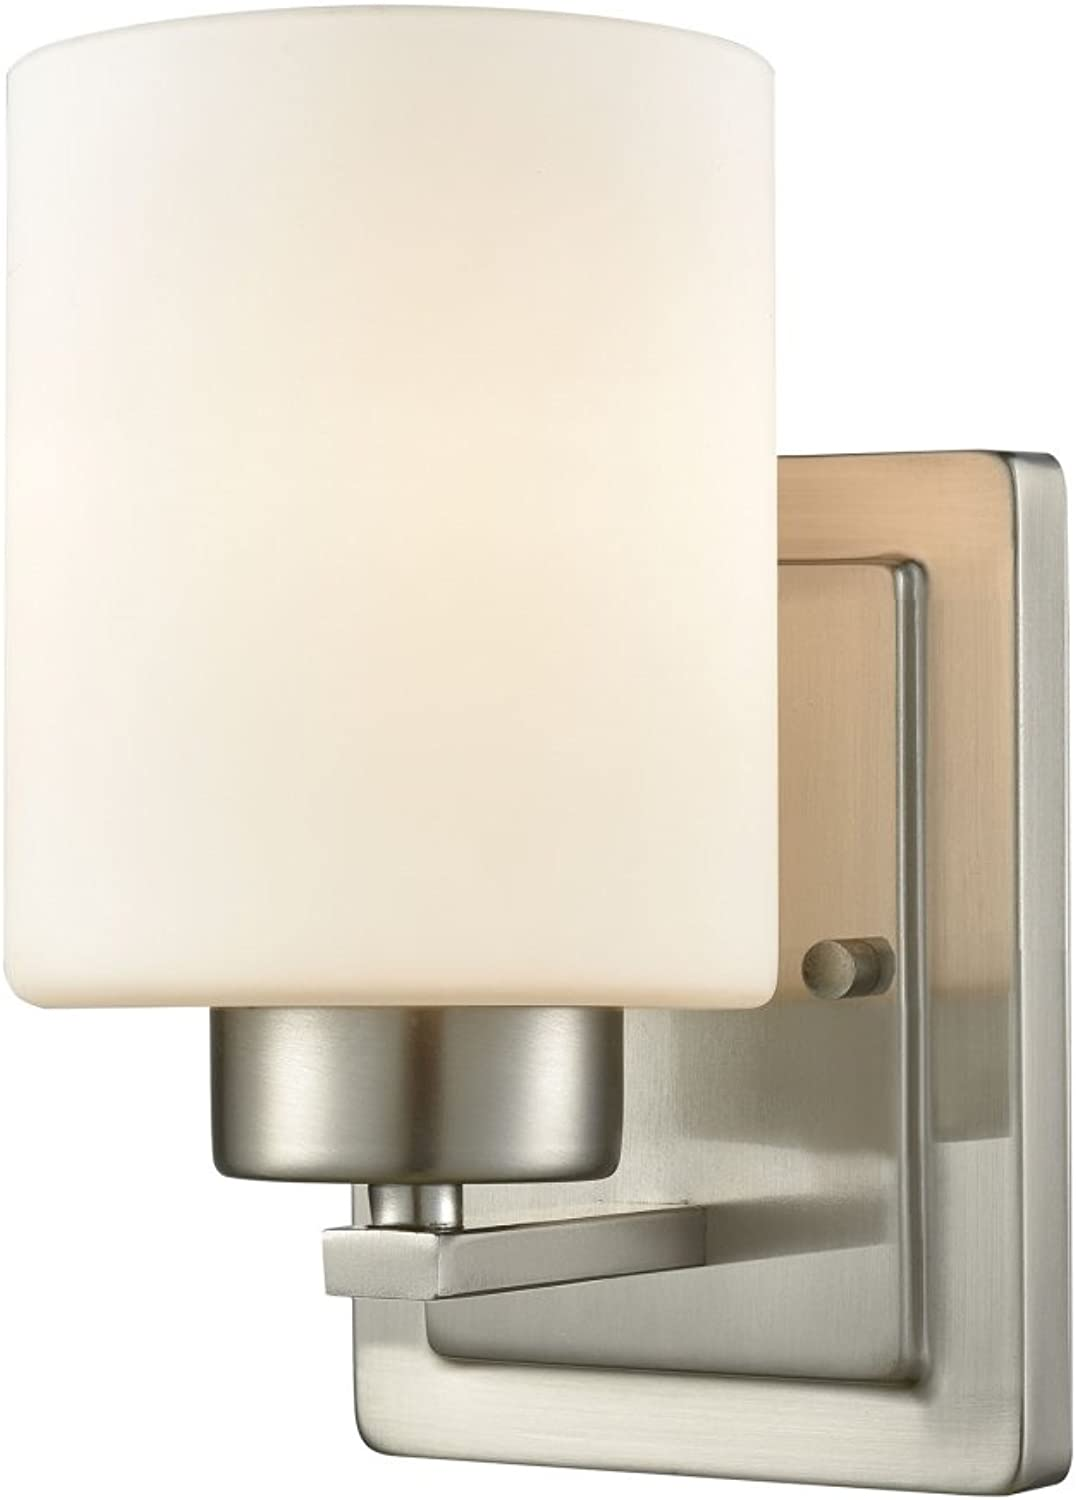 Elk Lighting CN579172 Summit Place 1-Light for The Bath in Brushed Nickel with Opal White Glass Vanity Wall Sconce